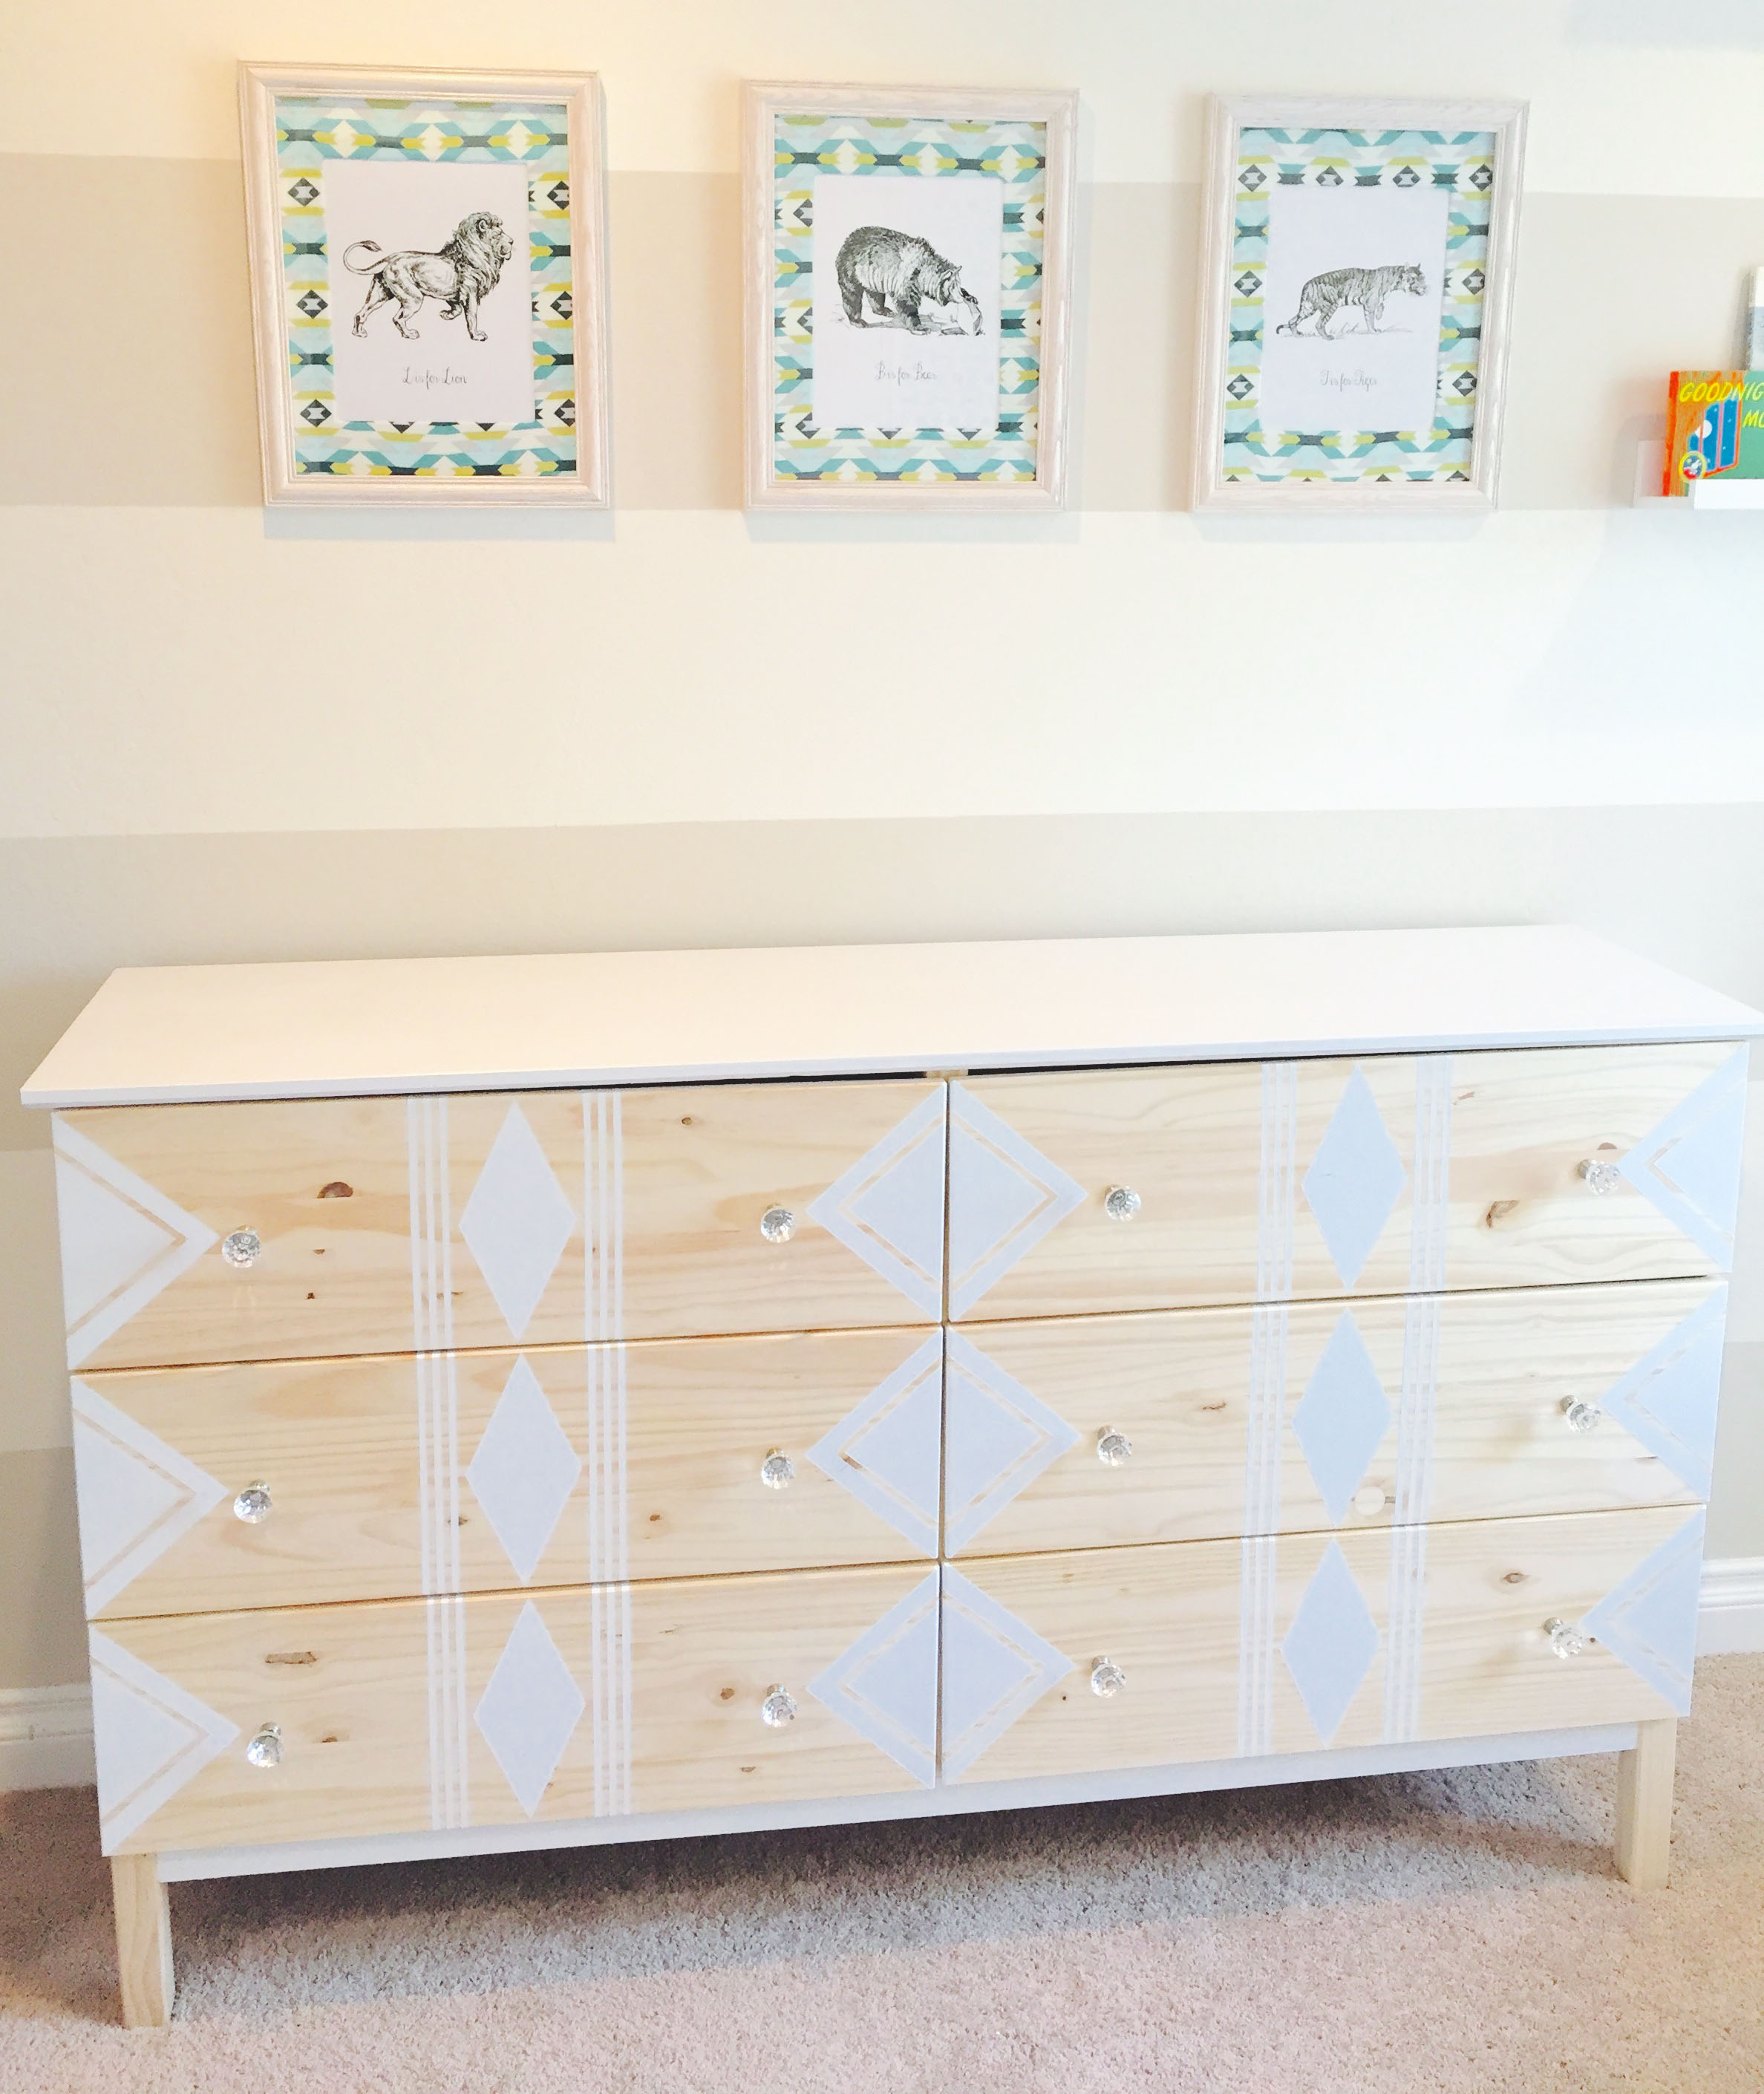 #896C42 Easy Ikea Hack Fun Painted Dresser Miss Bizi Bee with 2376x2820 px of Highly Rated Best Ikea Dresser 28202376 picture/photo @ avoidforclosure.info